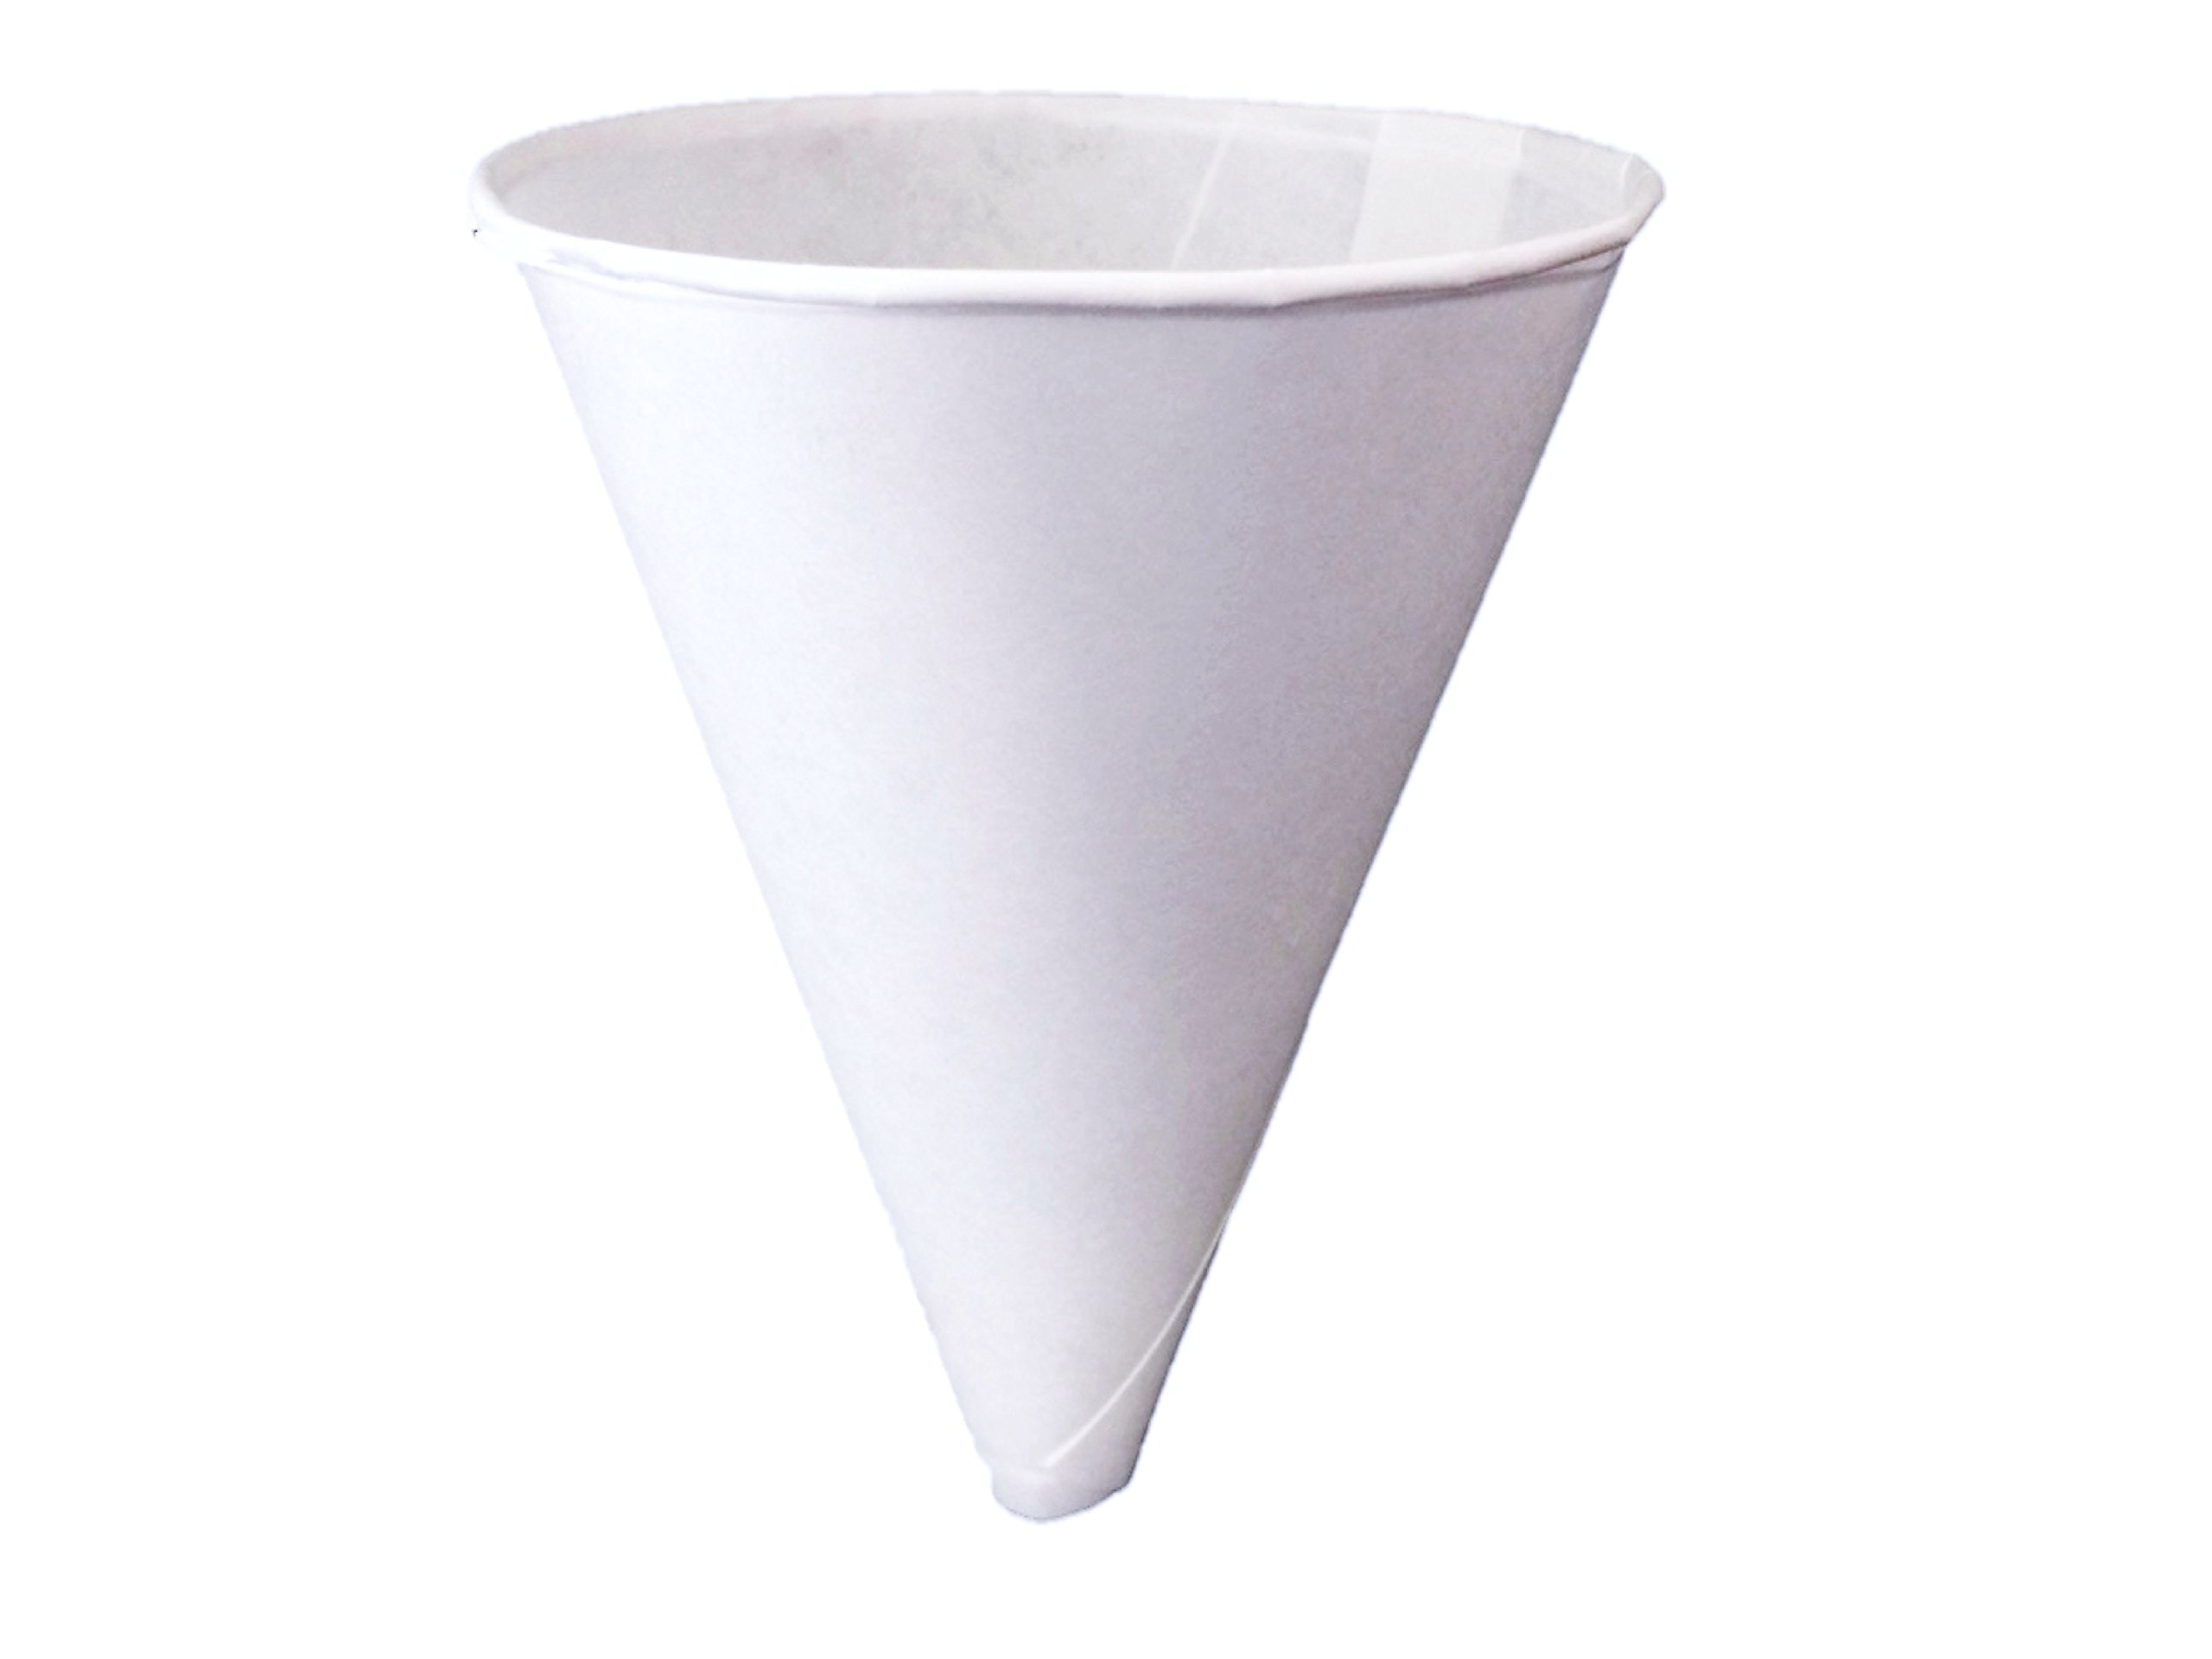 Konie Cups - 10.0KRF Recyclable Paper Cone Funnel, 10 oz Disposable {Tazas de cono de embudo} (1 Pack (125ct))